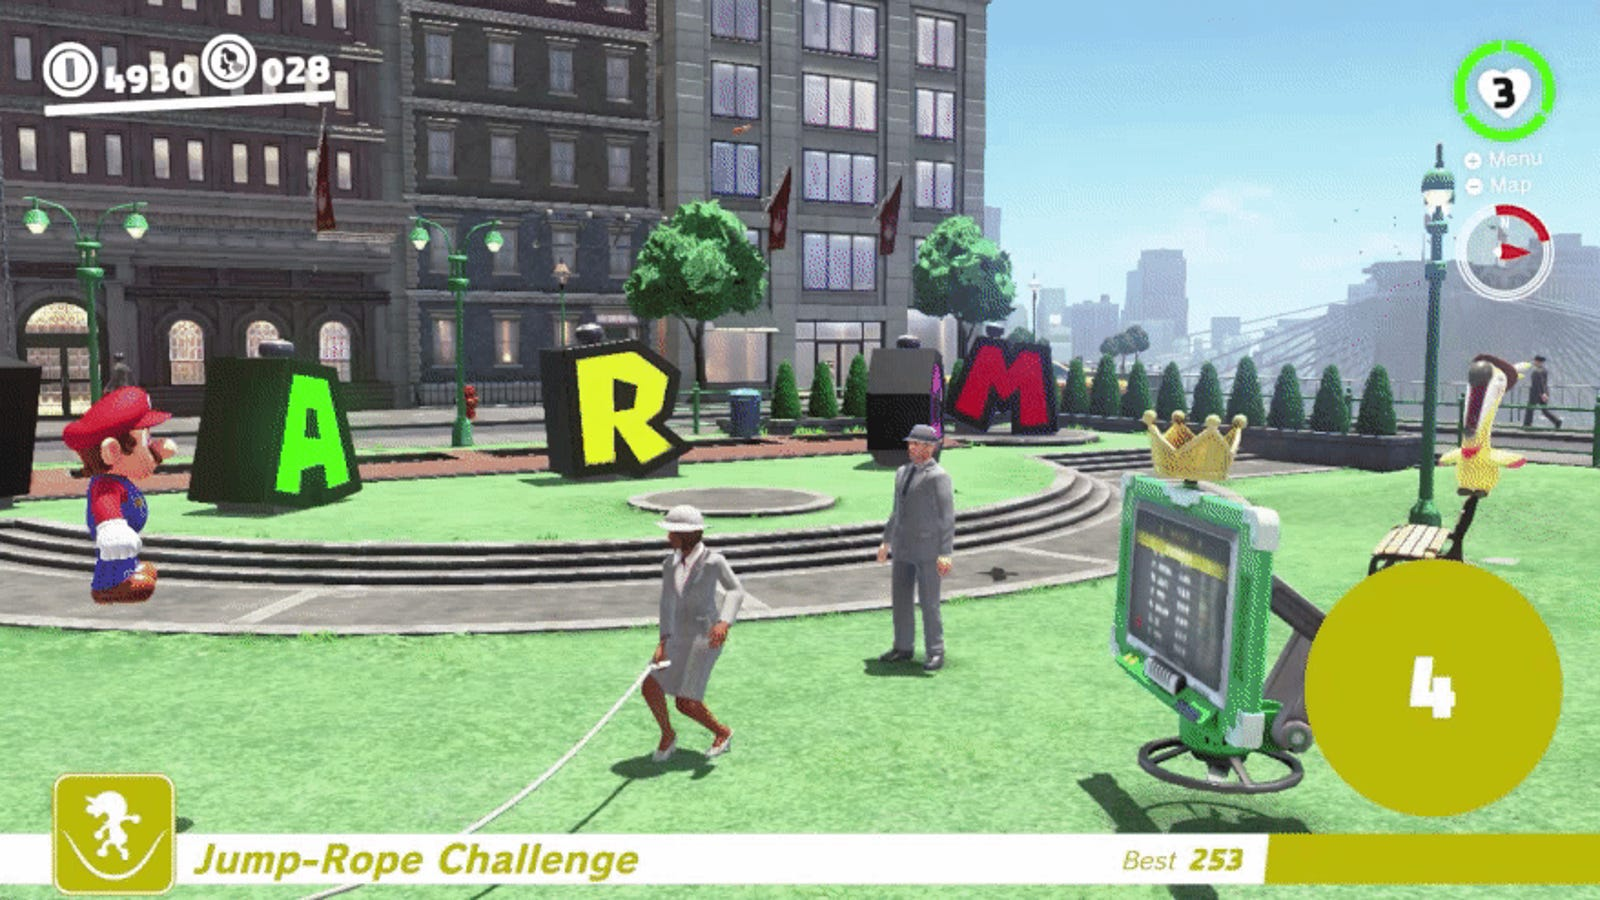 Super Mario Odyssey Players Use Glitch To Break Jump-Rope